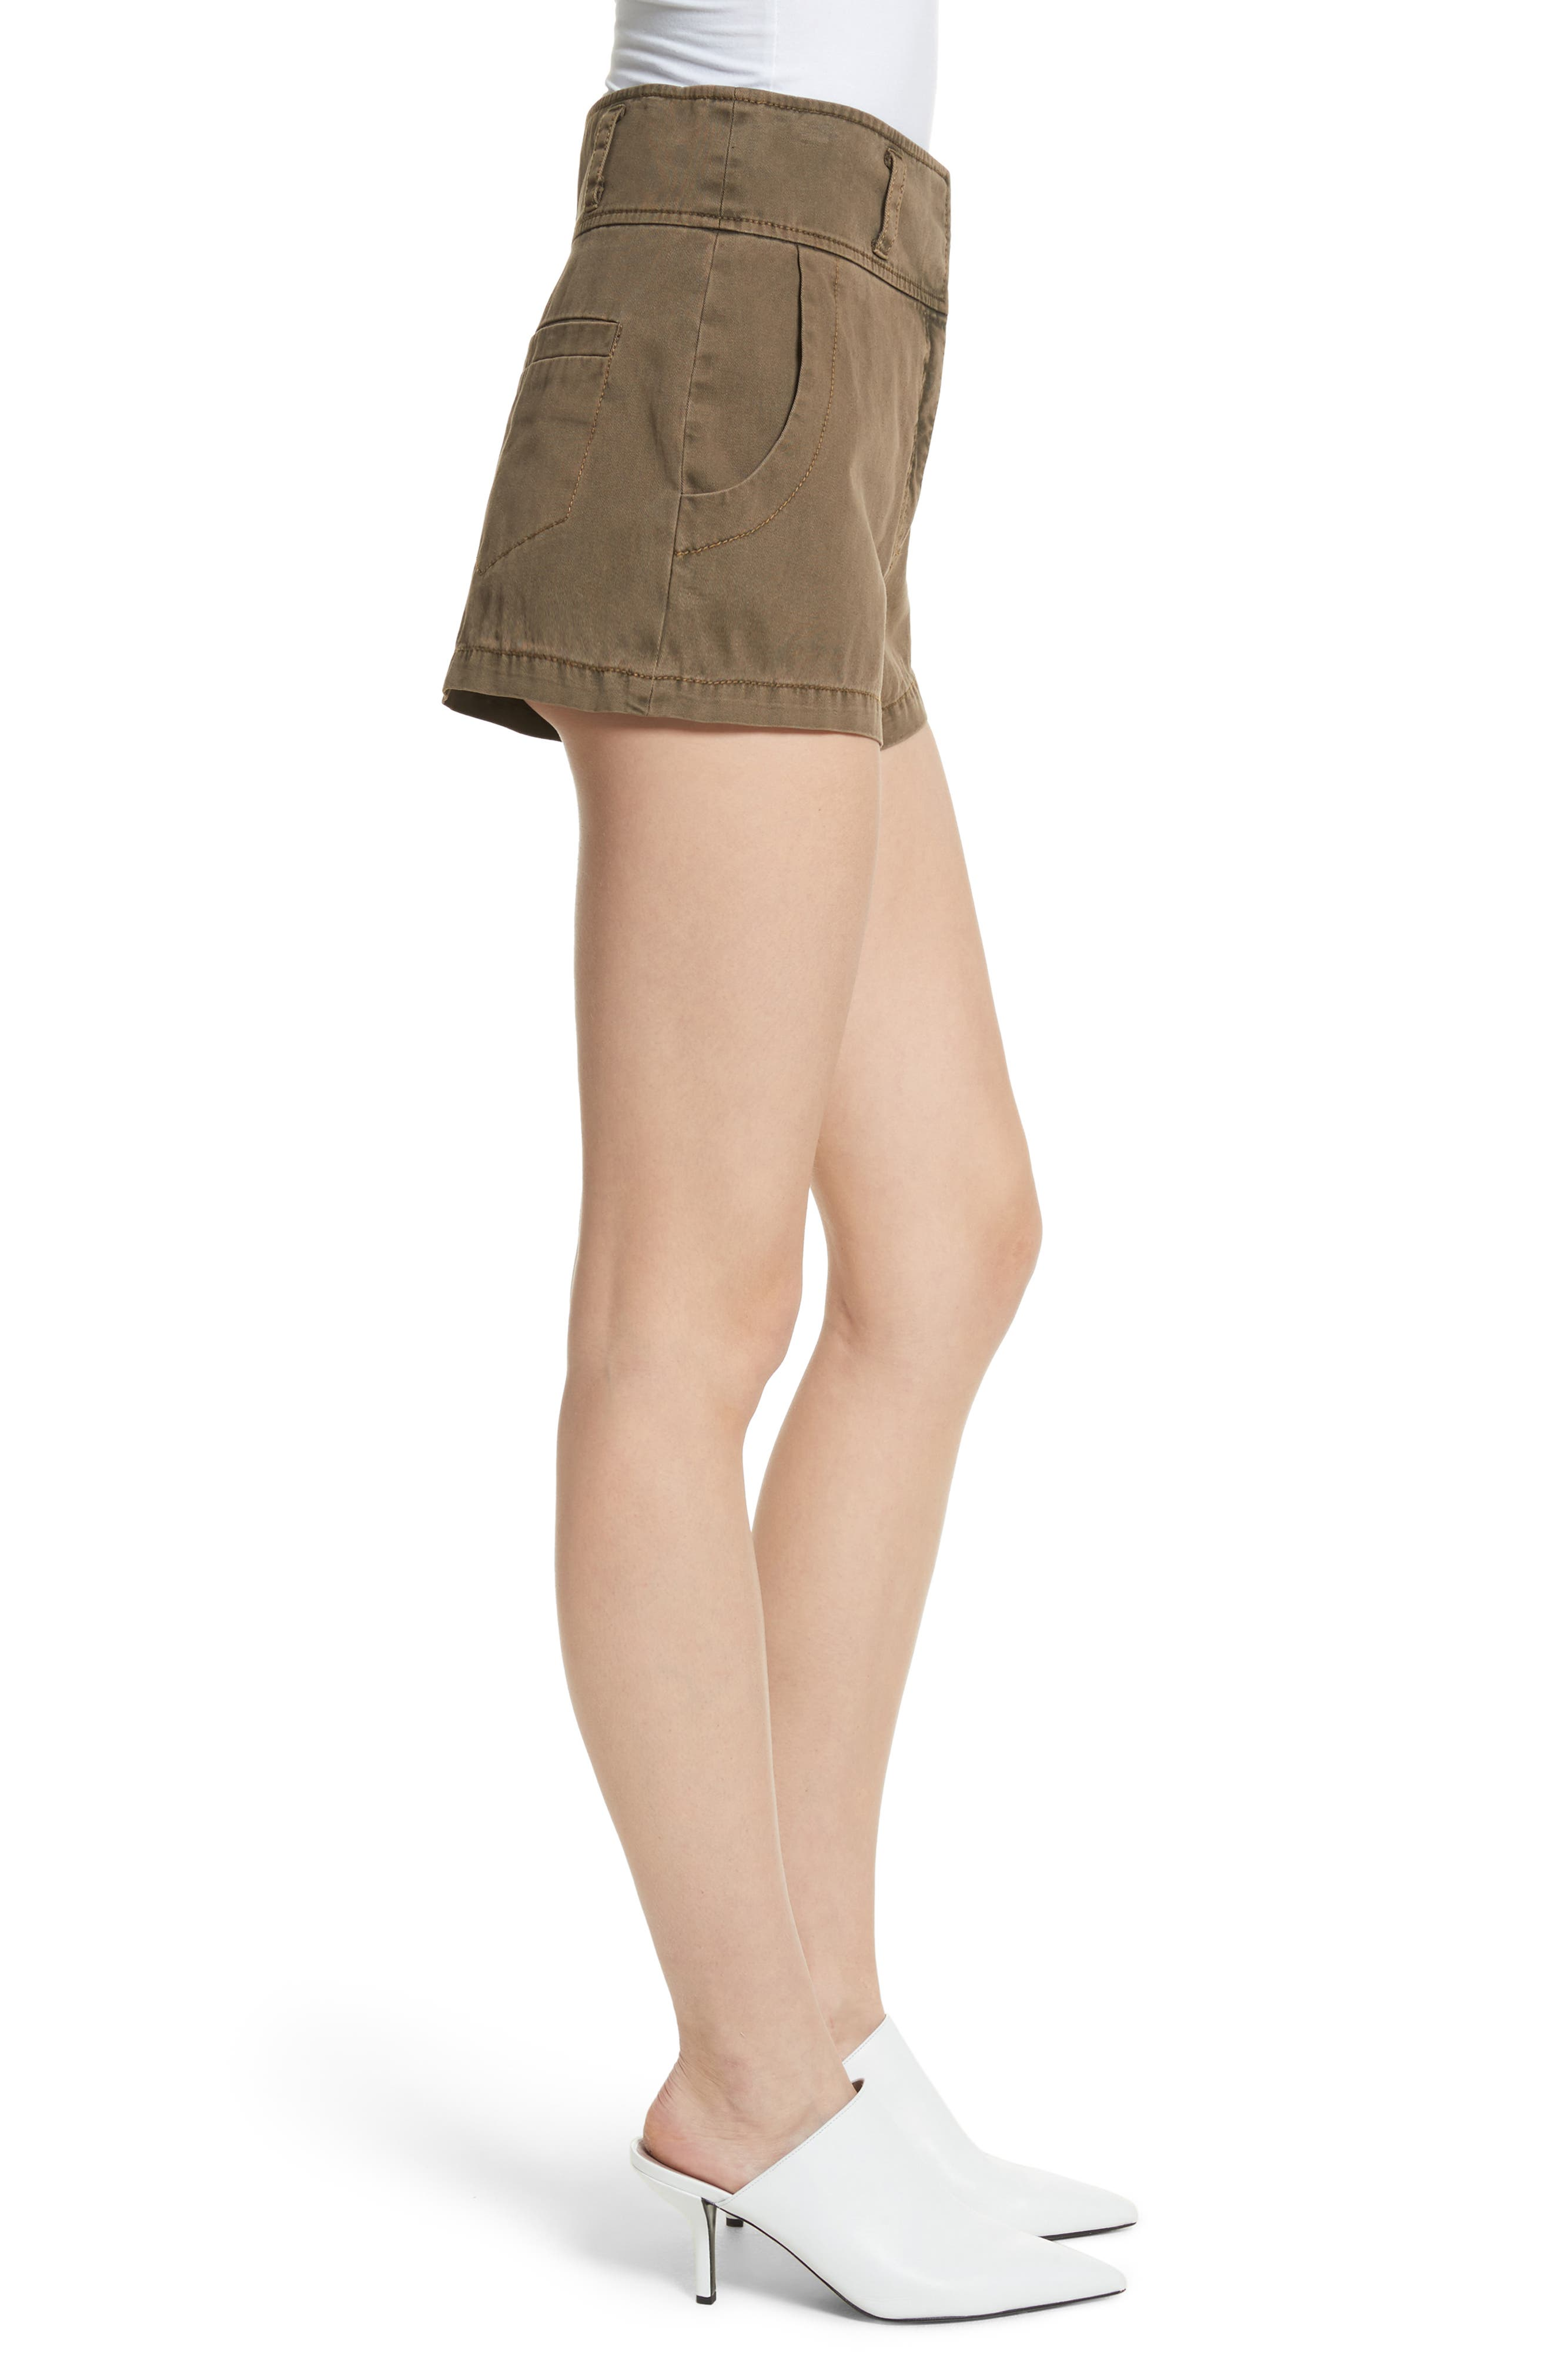 Tour Les Jour Shiloh Shorts,                             Alternate thumbnail 3, color,                             Olive/ Amber